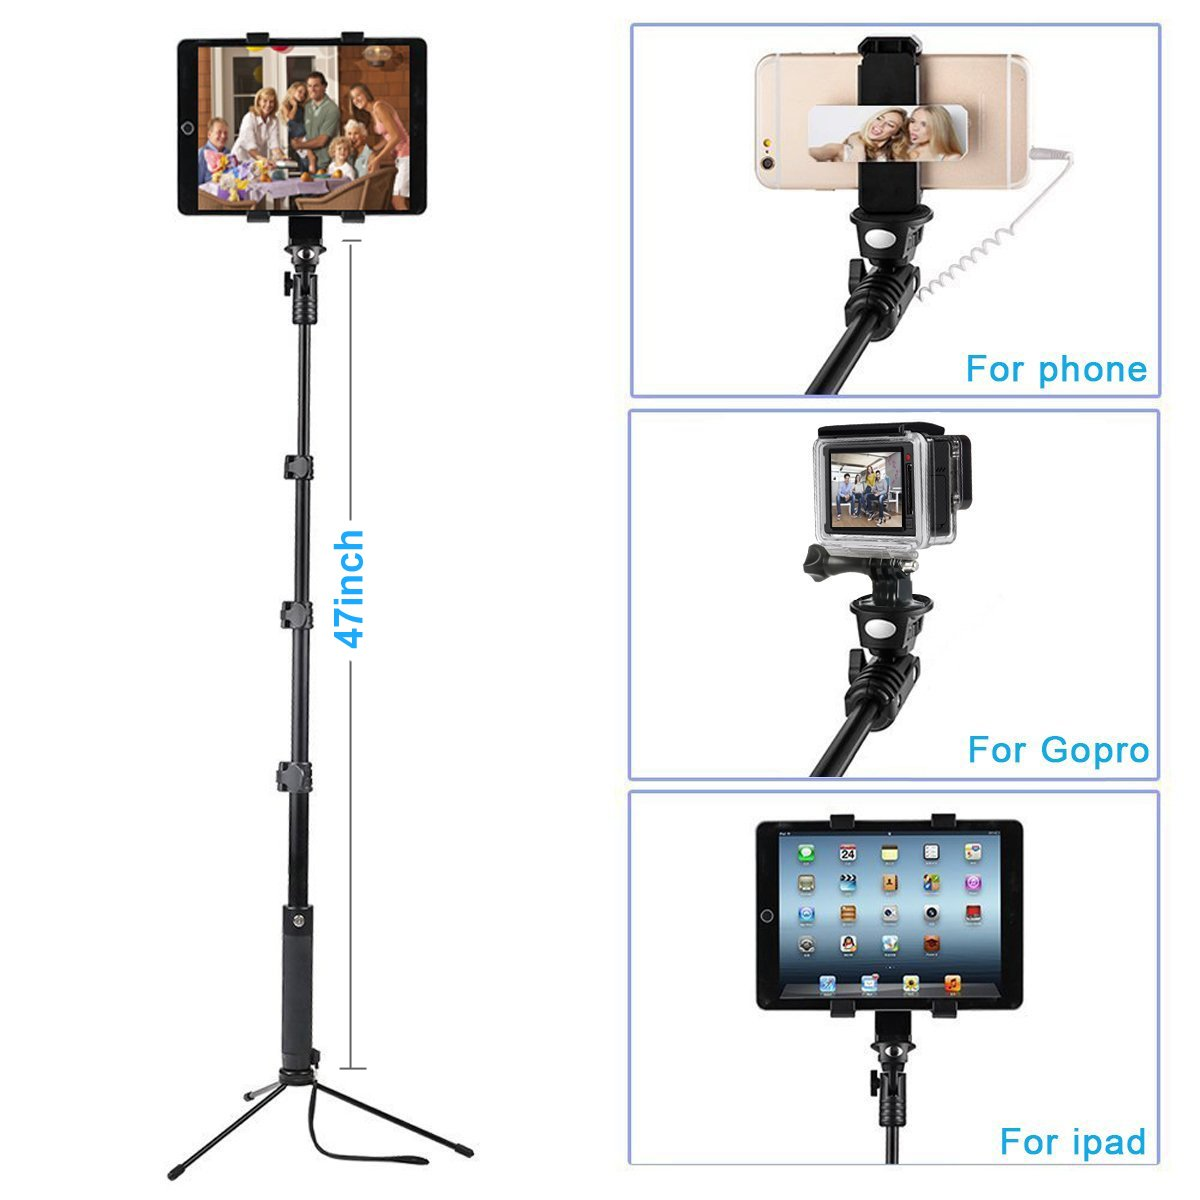 ohCome [Battery Free] 16.5-57'' Wired Handheld Aluminium Monopod -Use as Selfie Stick, Gopro Pole, Floor Tablet/Phone Tripod Stand | Fit for 3.5-10'' Tablets, iPhone, Android Phones, Gopro Hero Camera